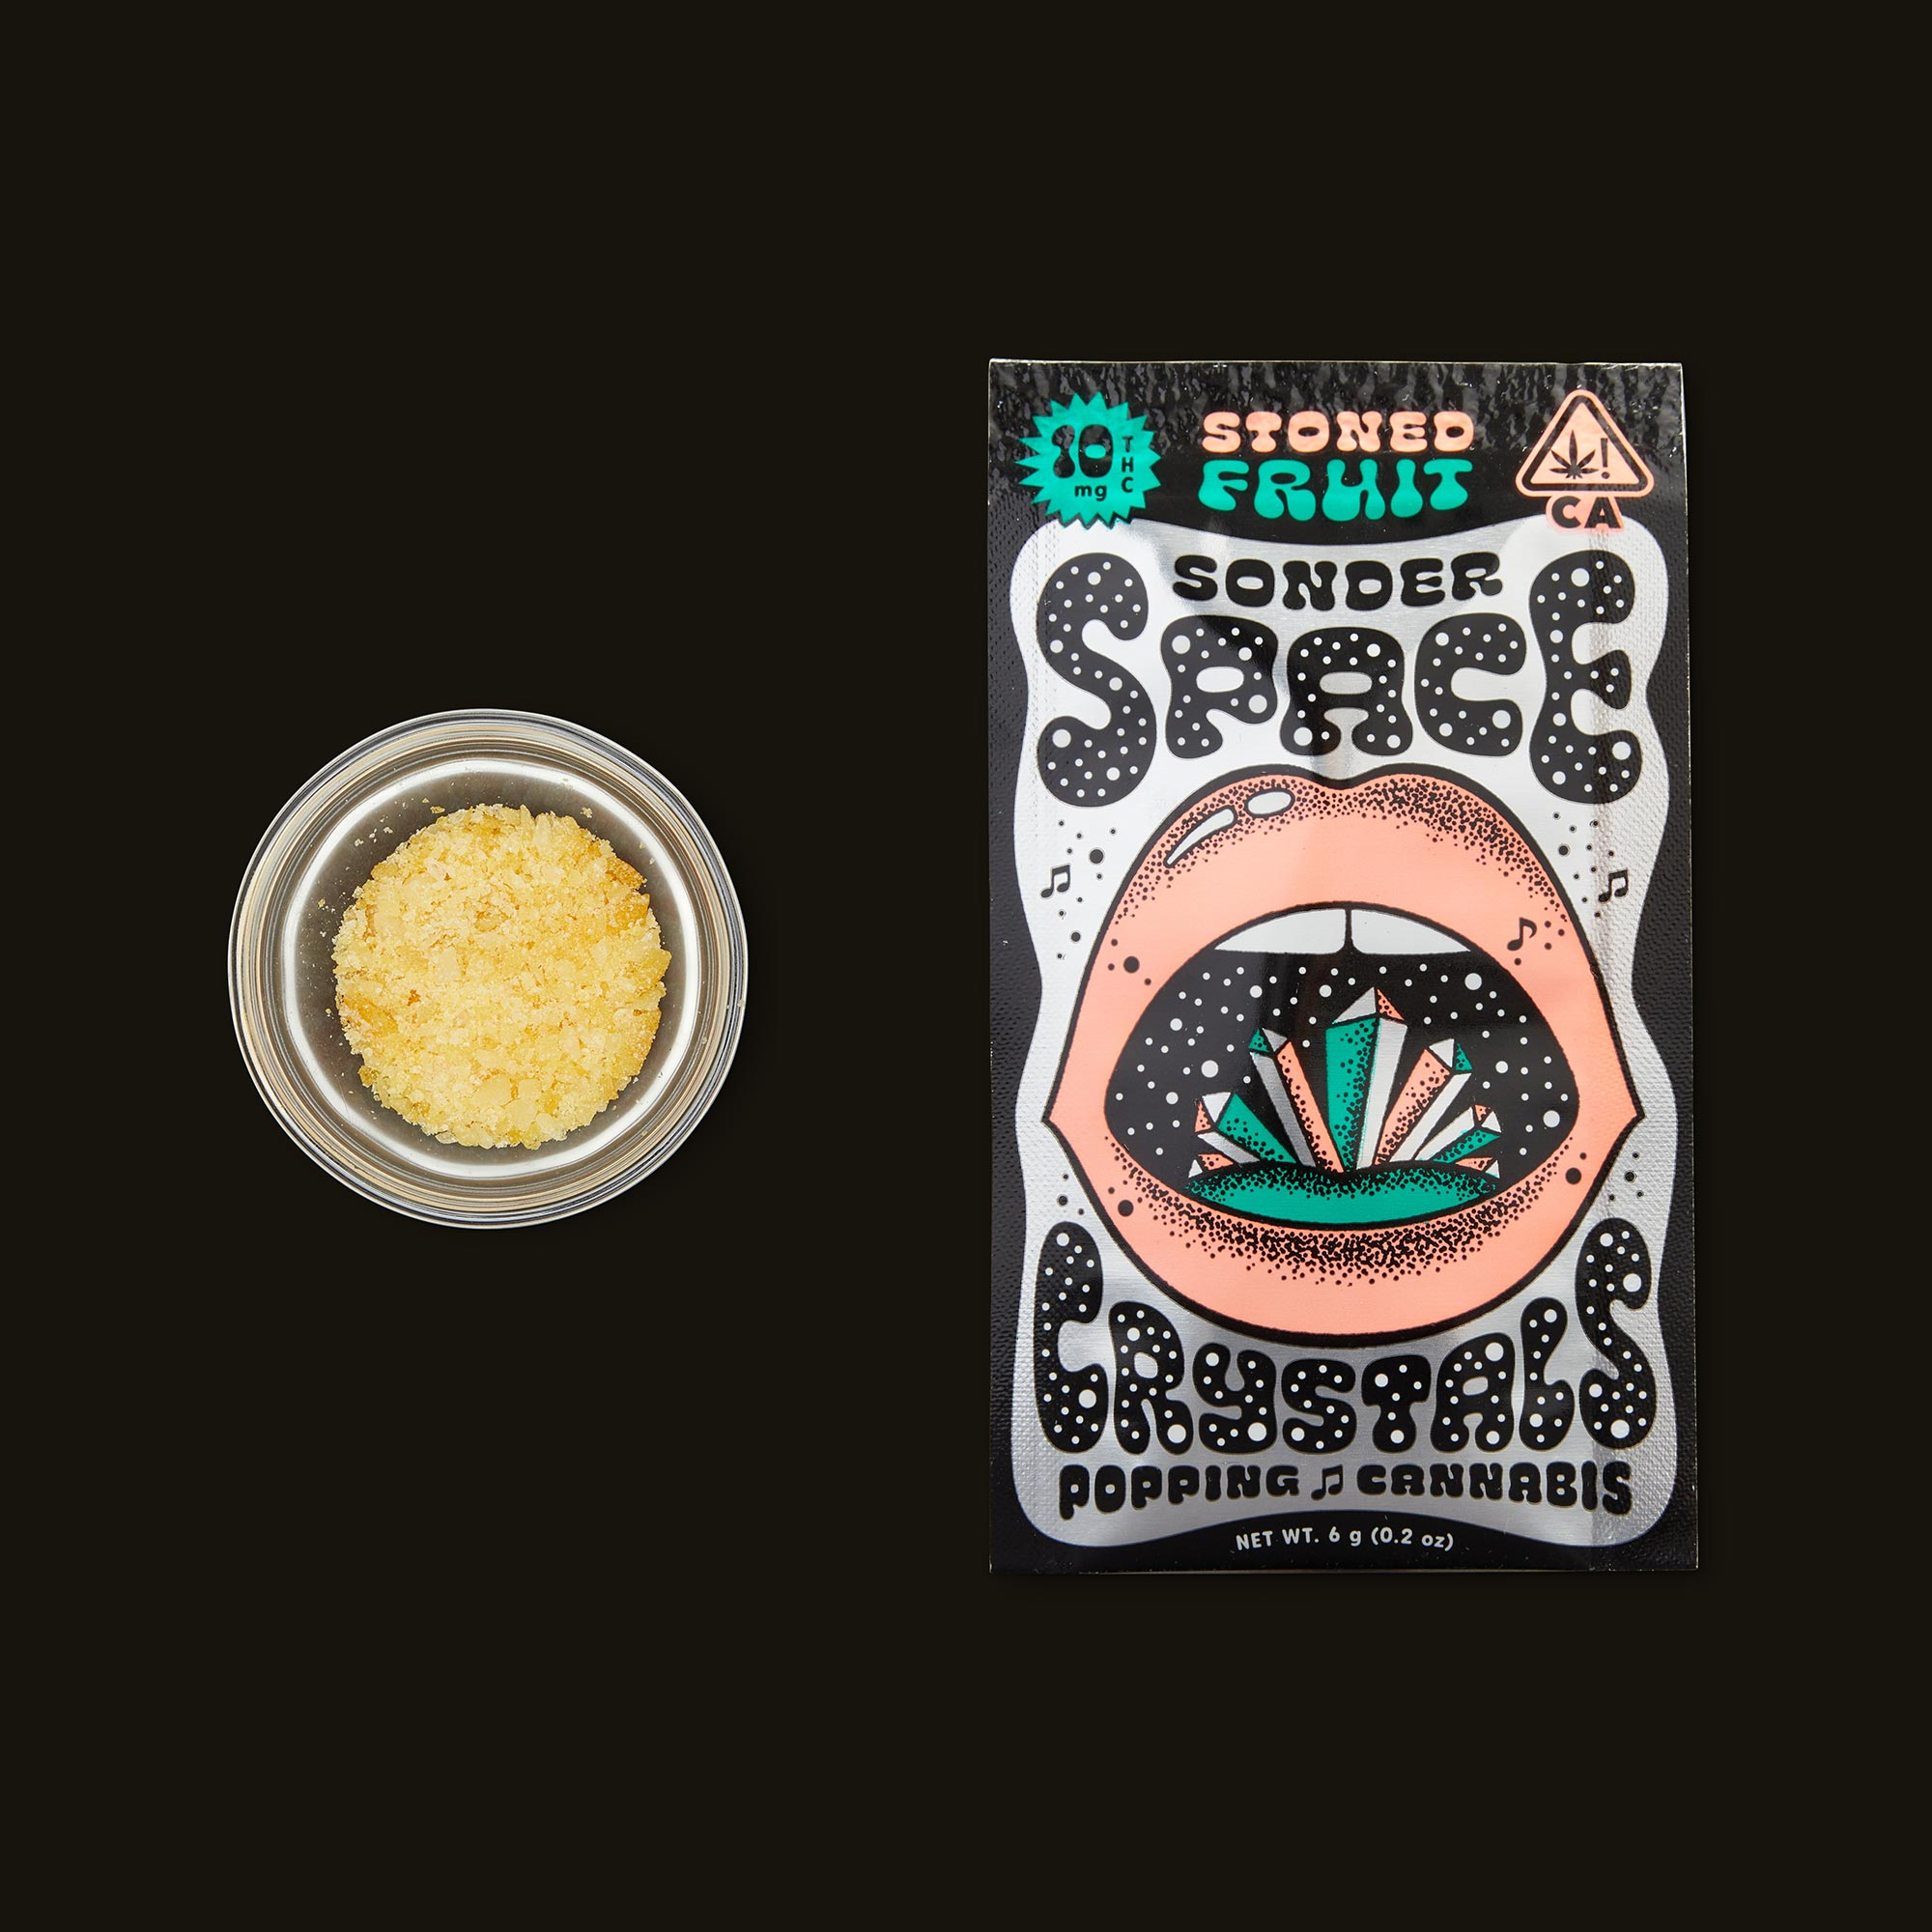 Sonder Stoned Fruit Space Crystals